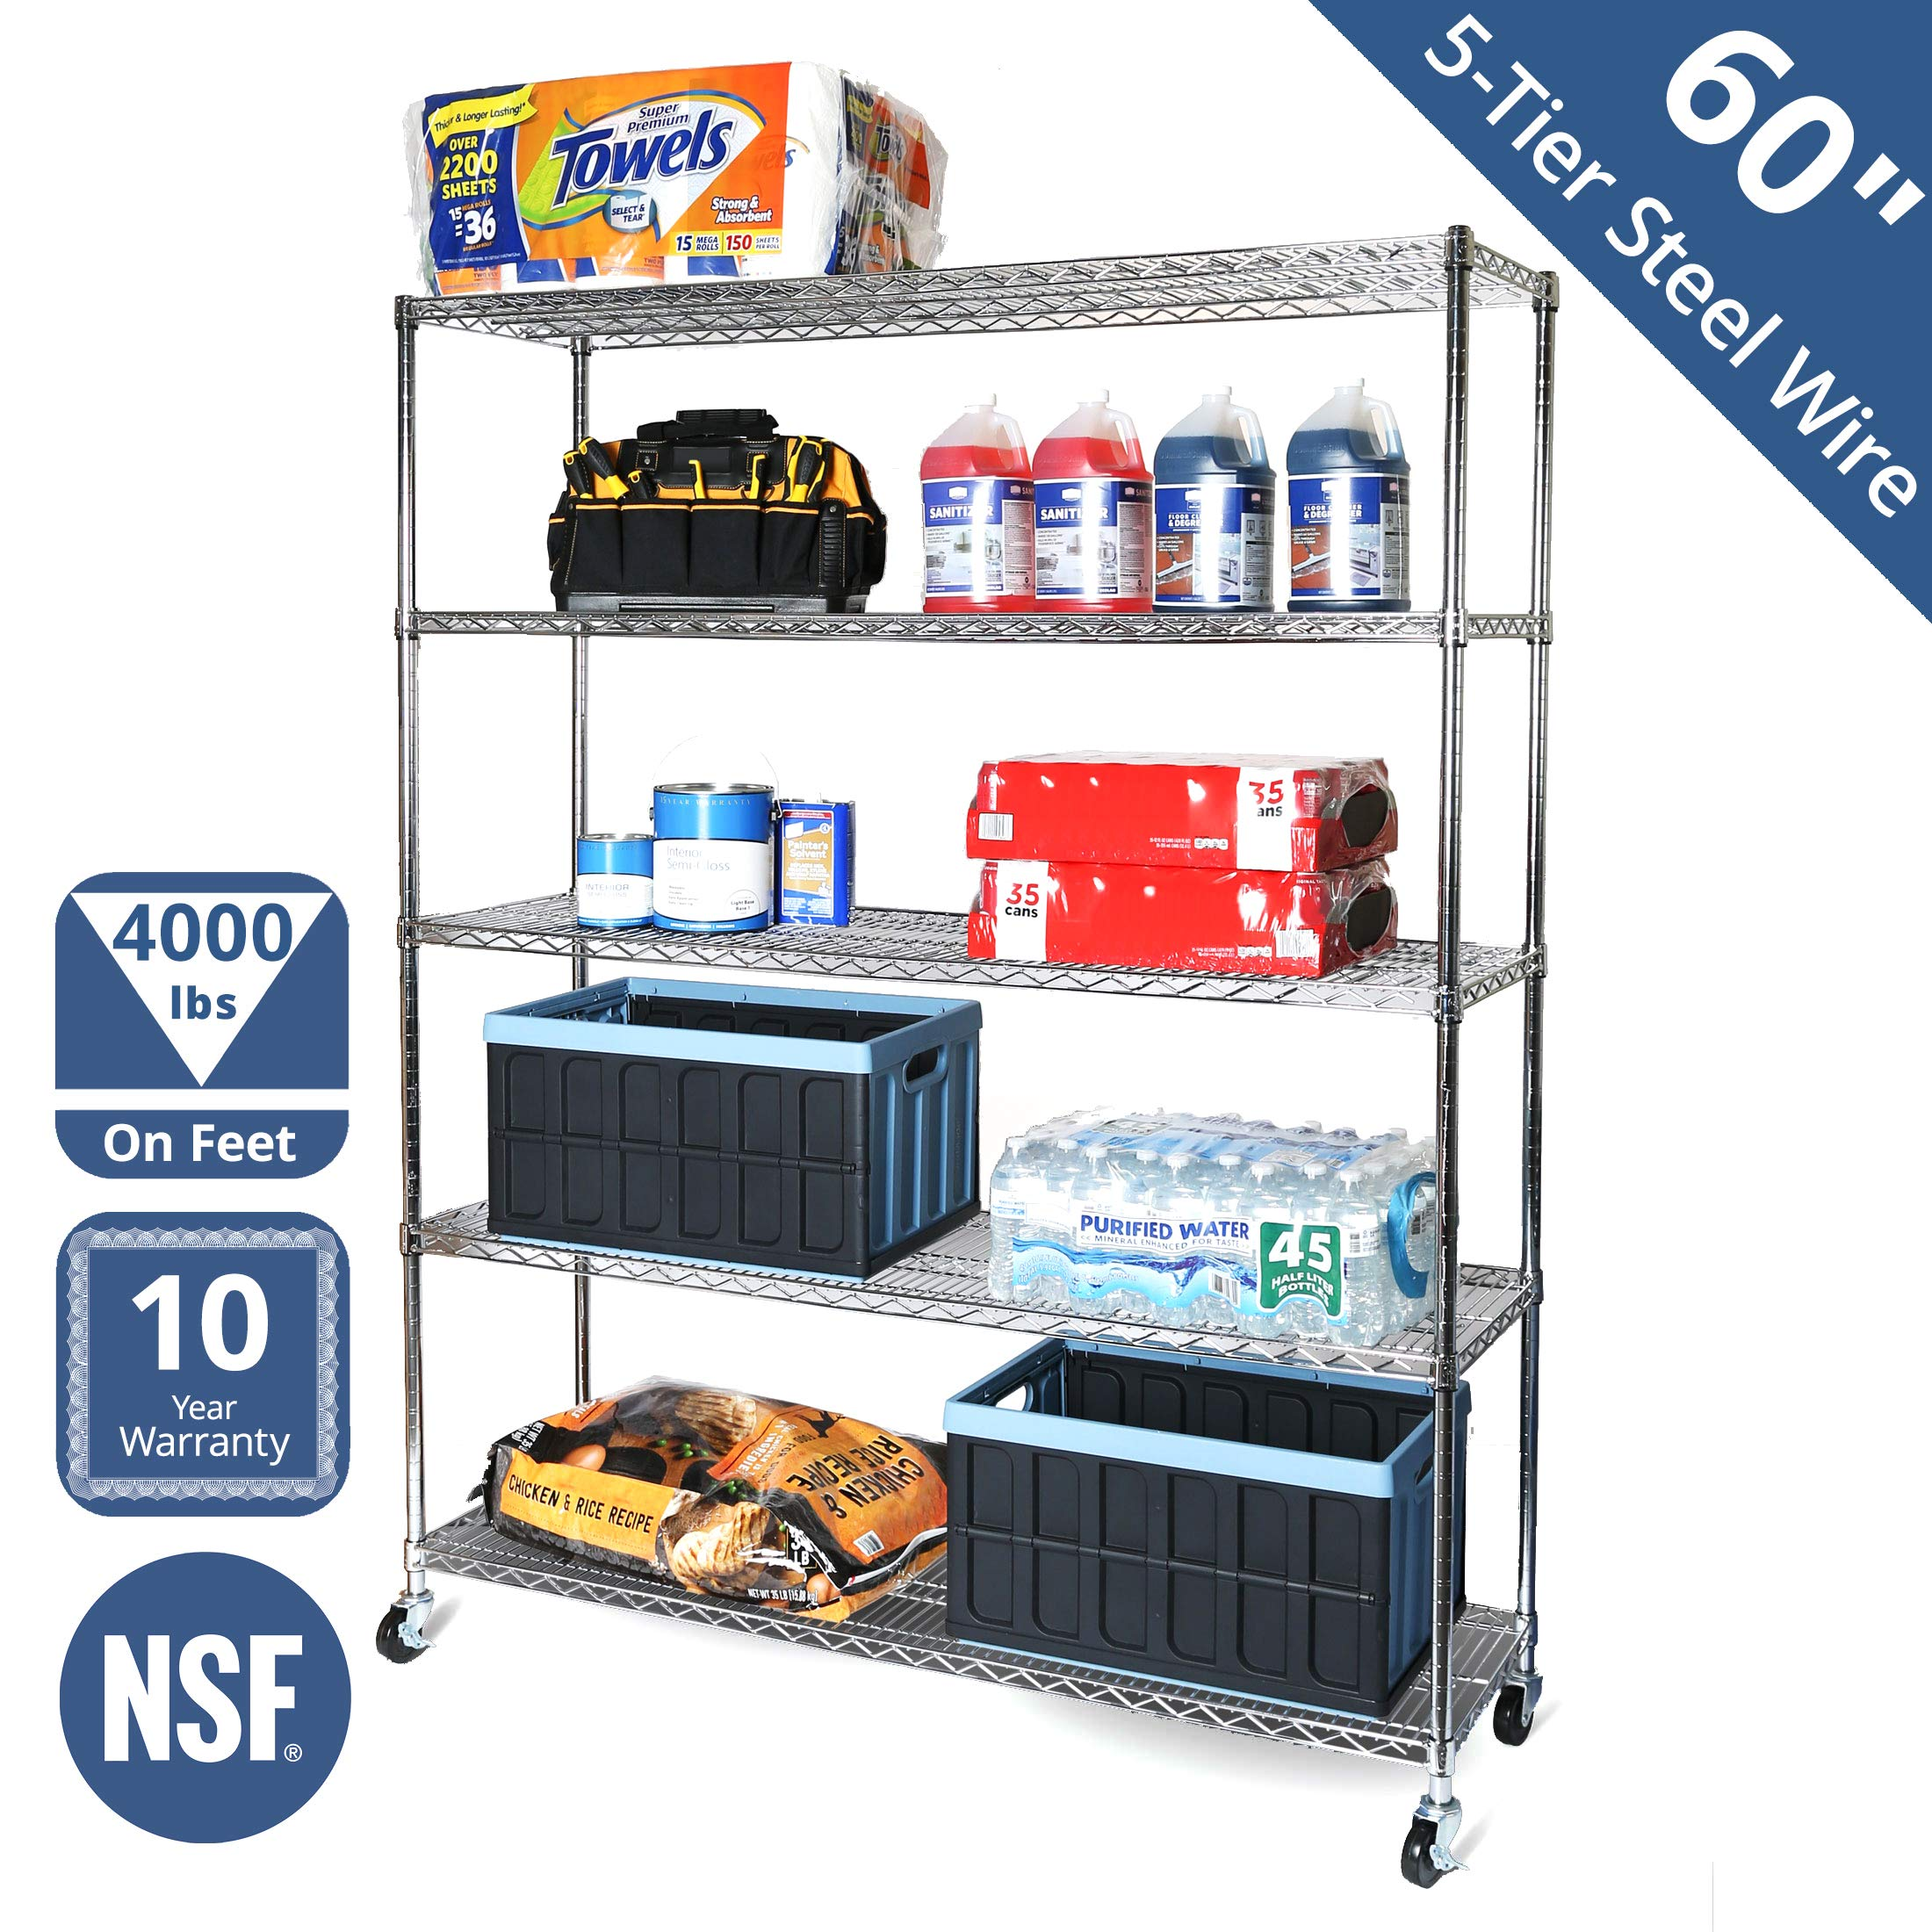 Seville Classics UltraDurable Commercial-Grade 5-Tier NSF-Certified Steel Wire Shelving with Wheels, 60'' W x 18'' D x 72'' H, Chrome by Seville Classics